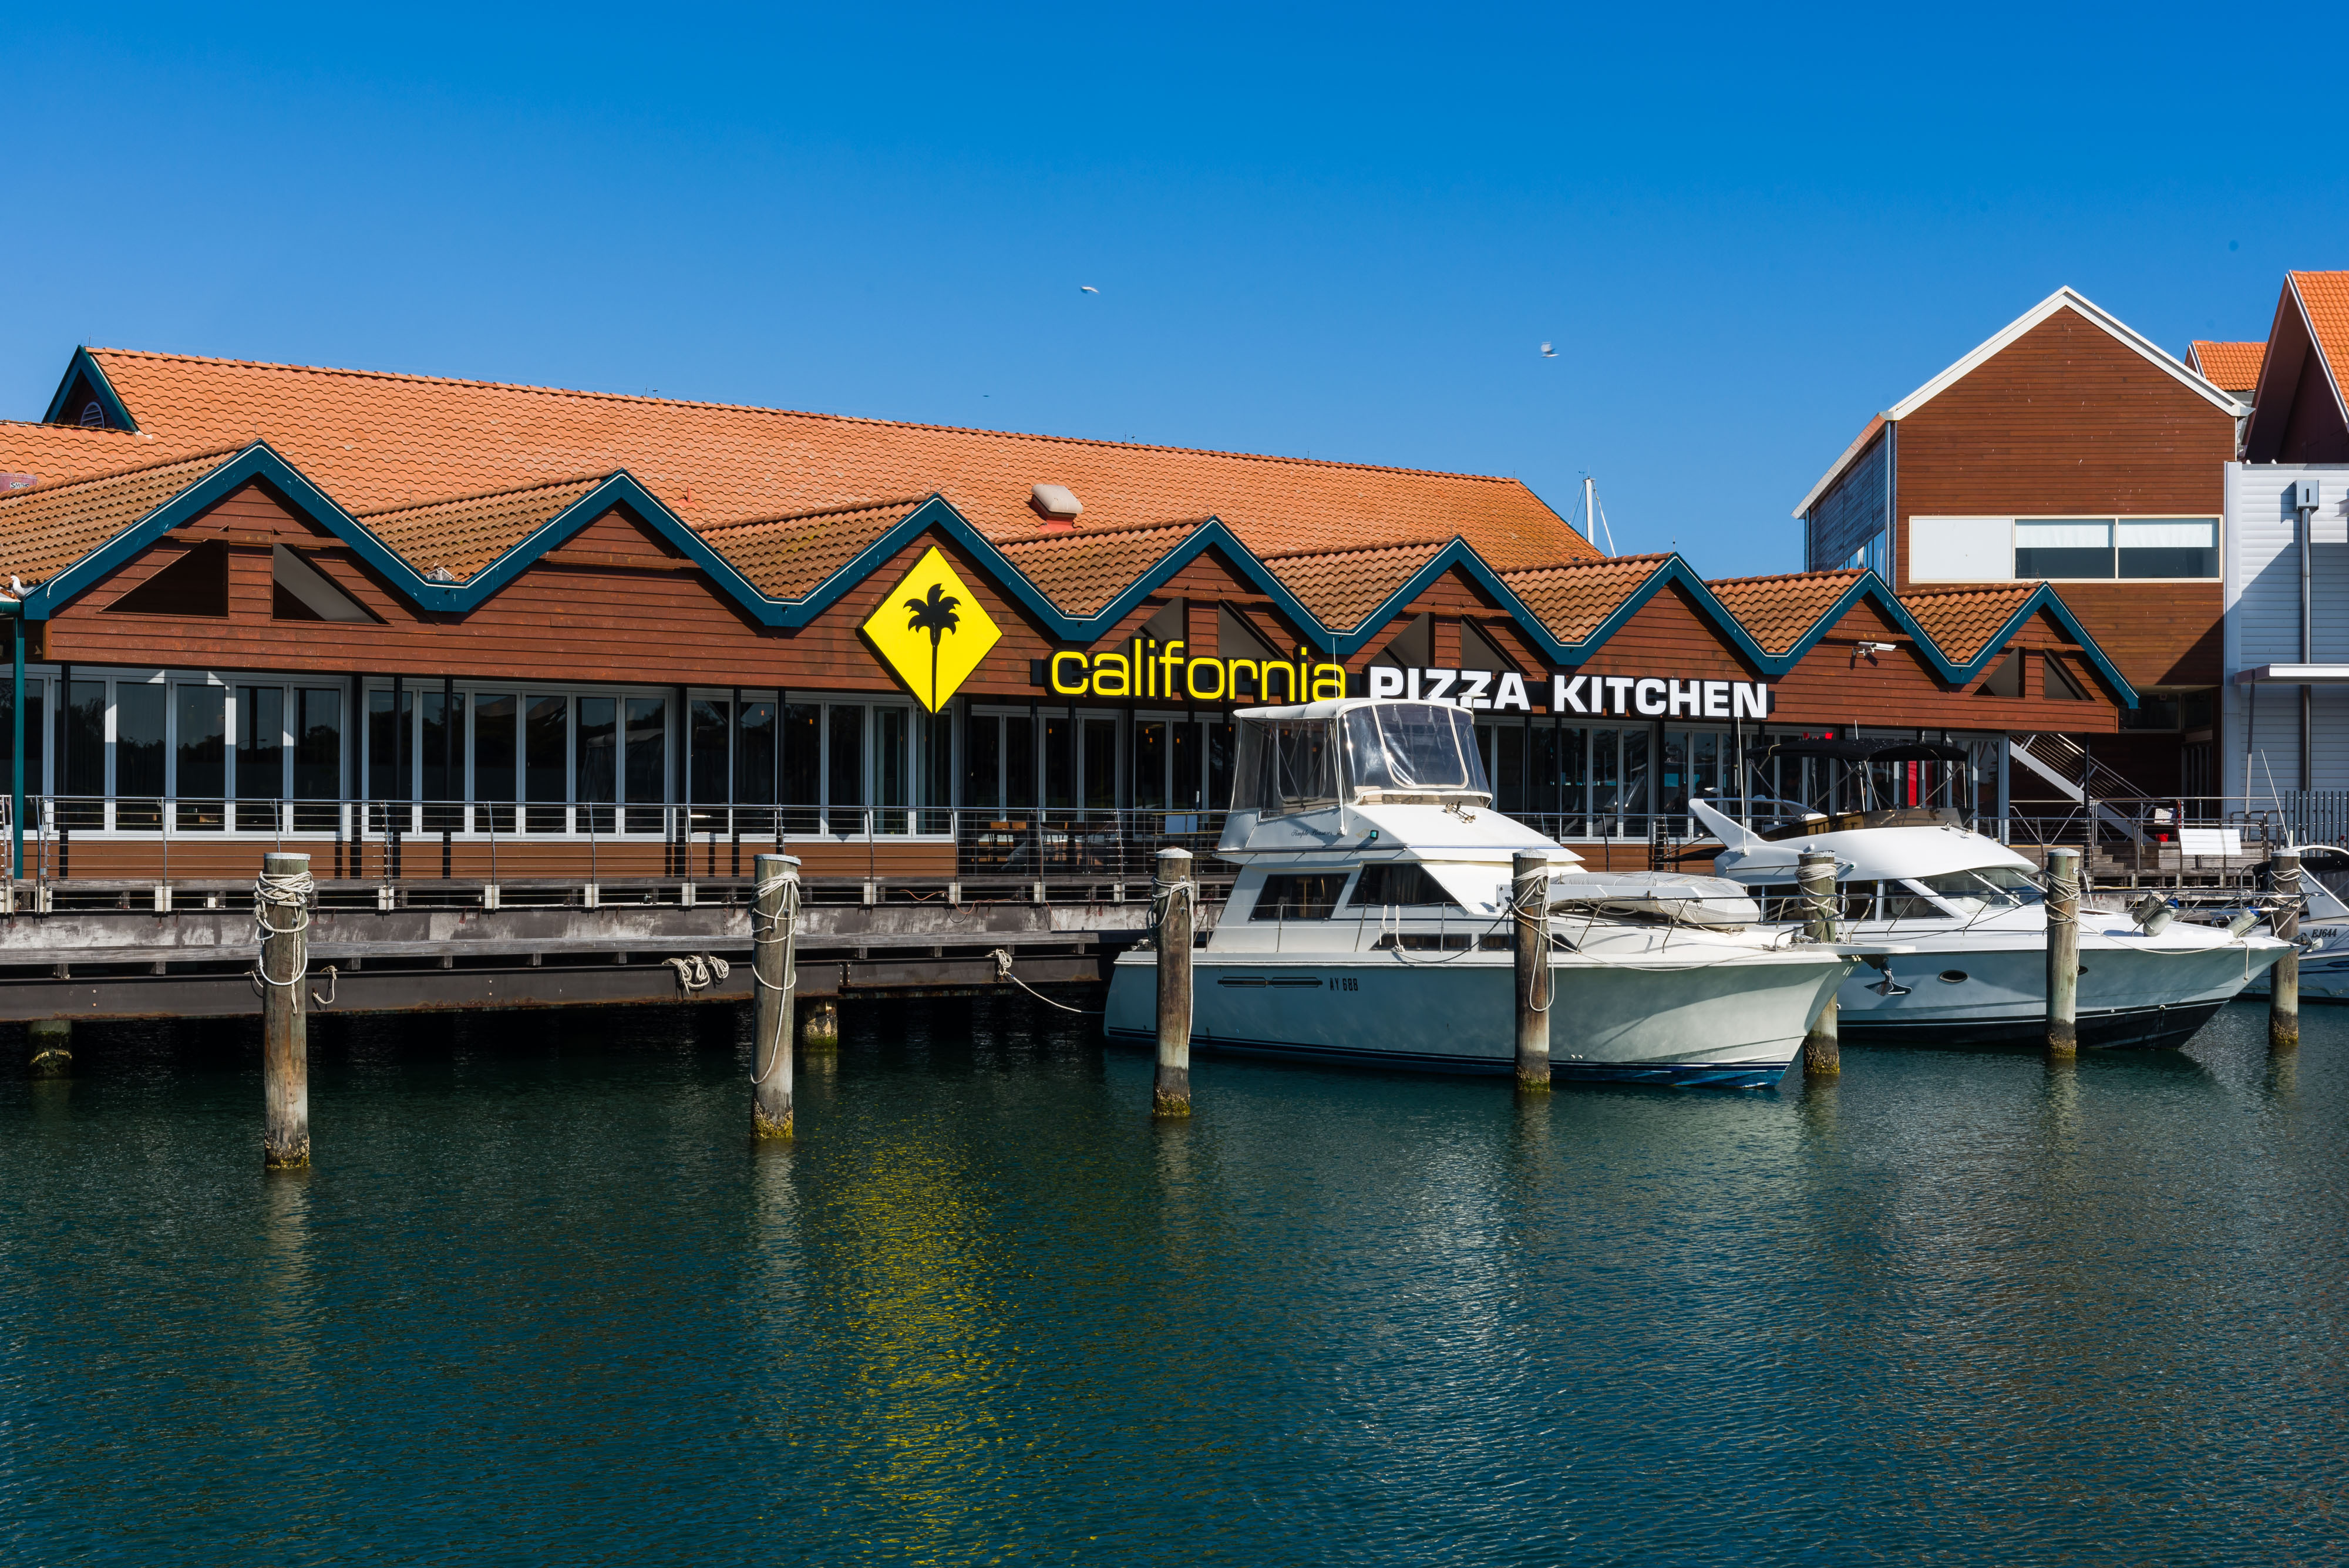 Charmant California Pizza Kitchen Opens First Location In Australia | Business Wire